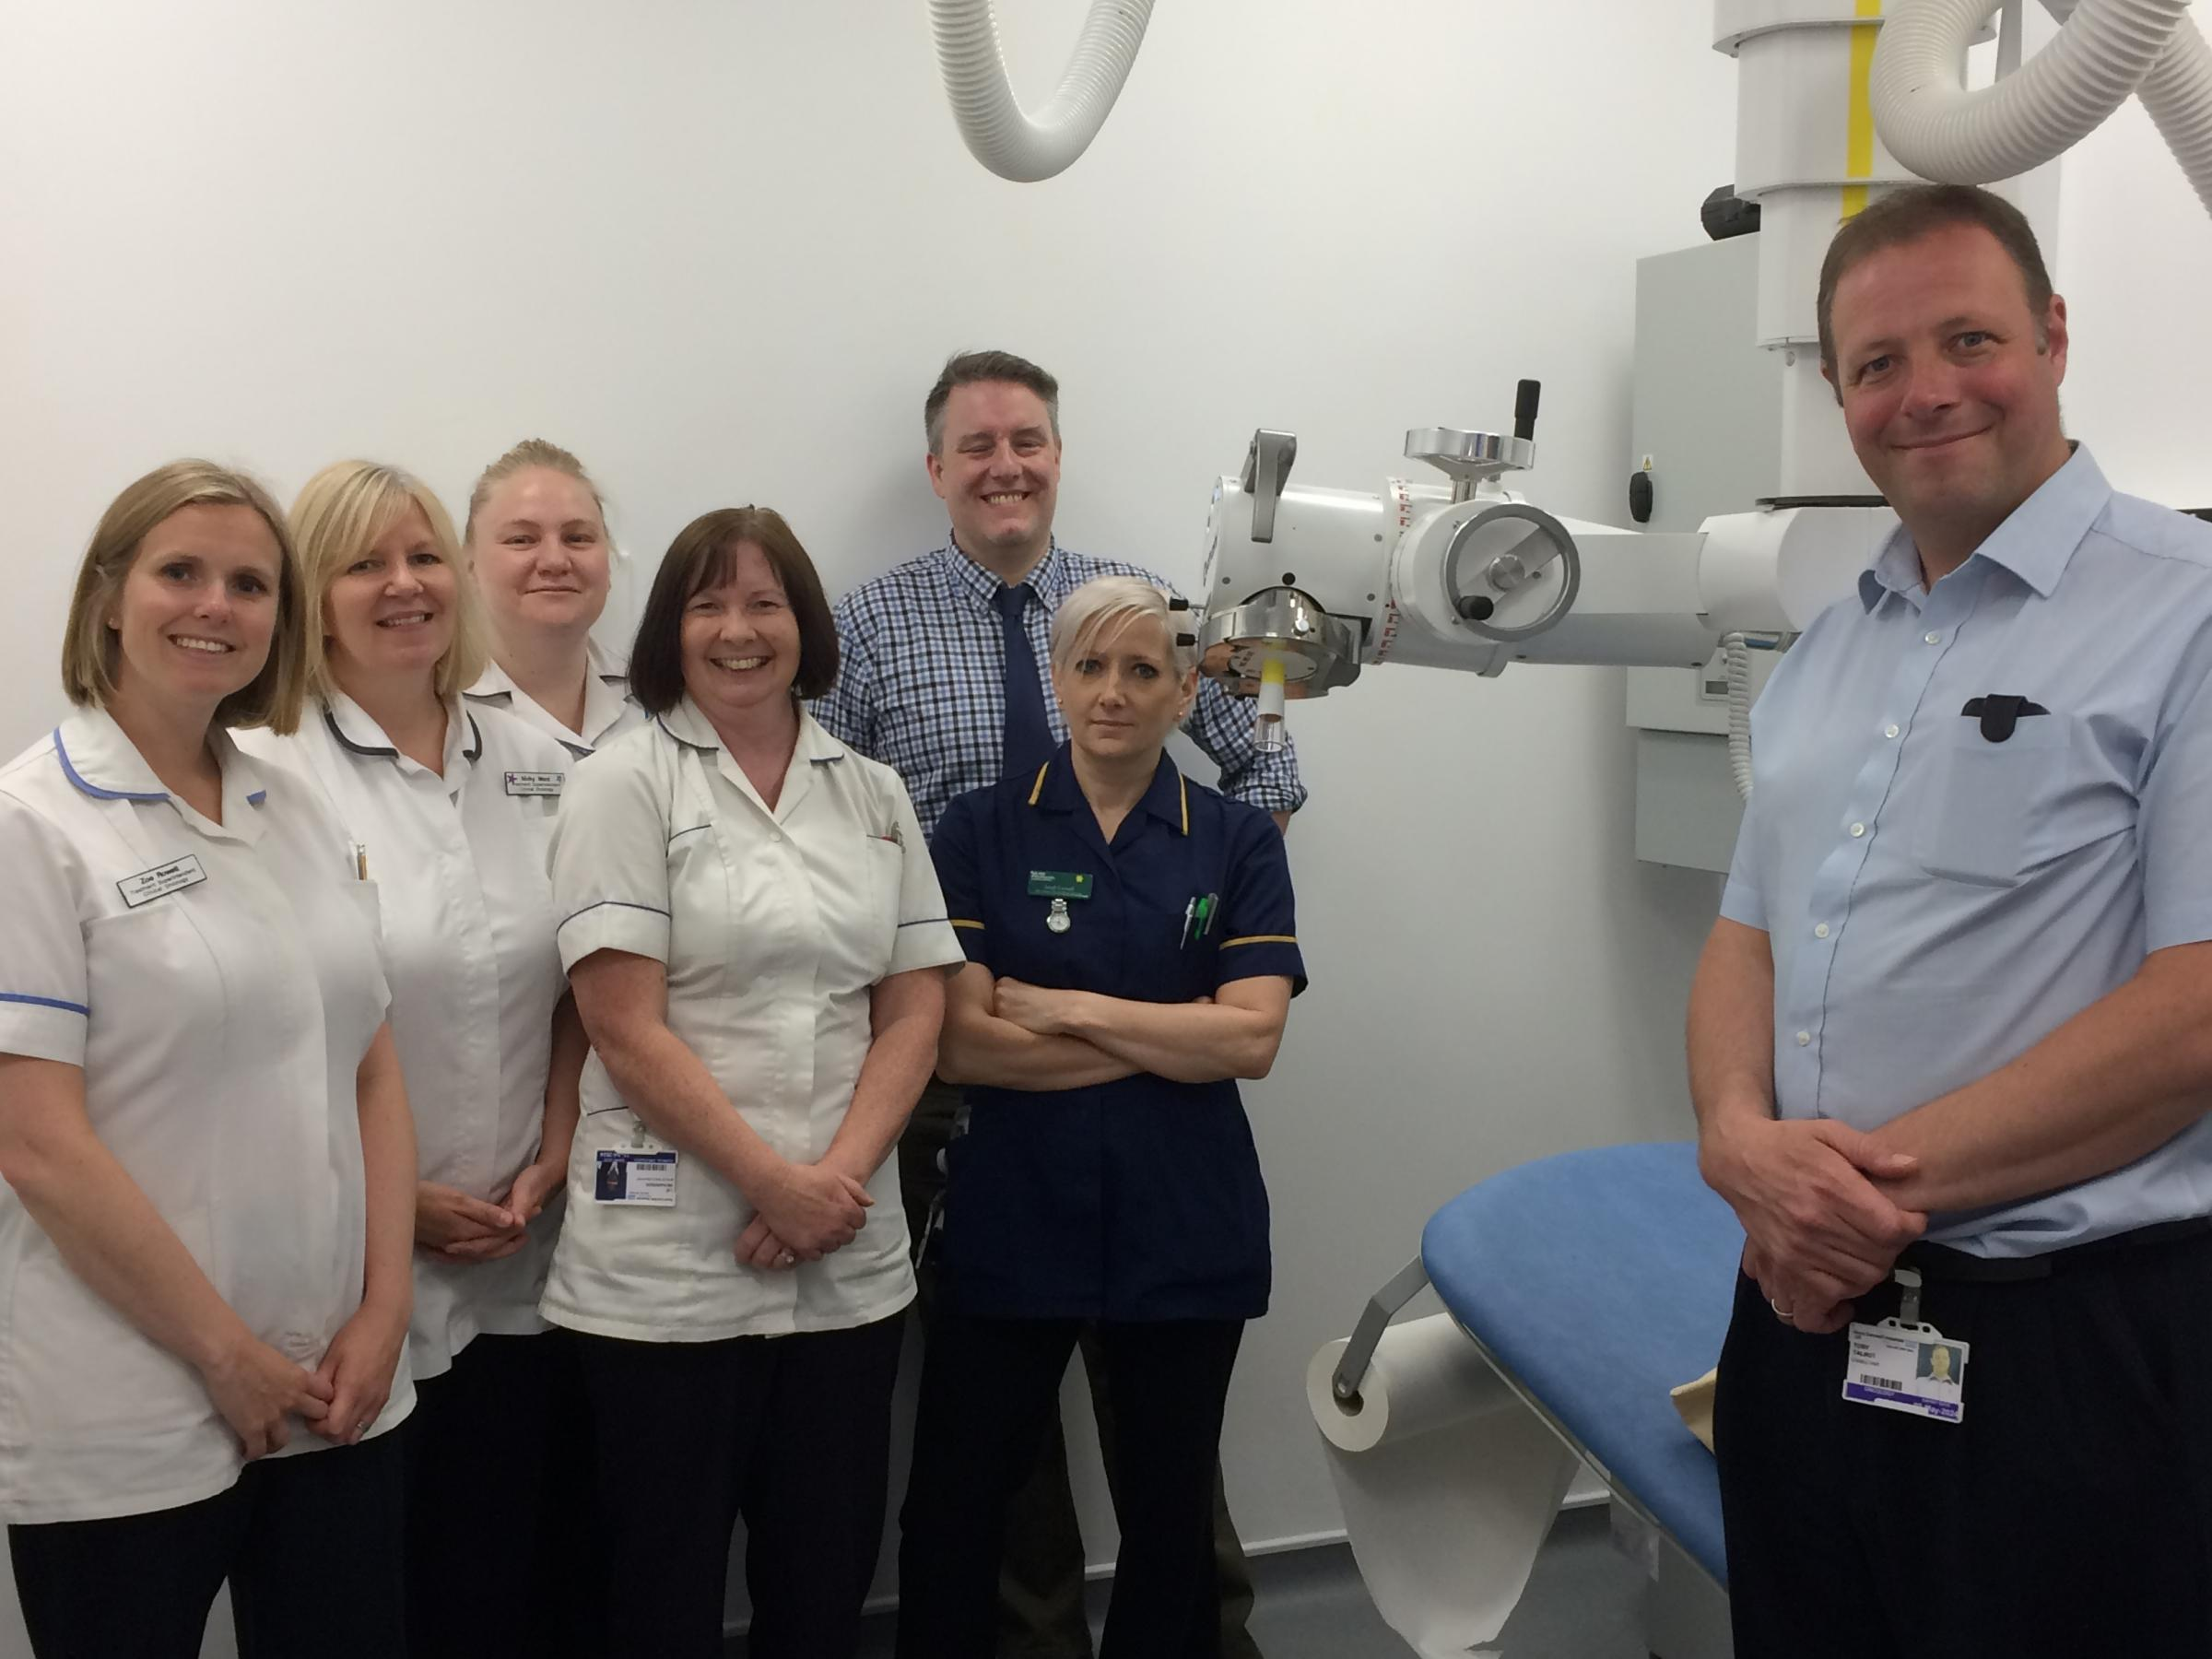 Members of the Sunrise Centre oncology team on the first day of operation for the superficial radiotherapy treatment unit